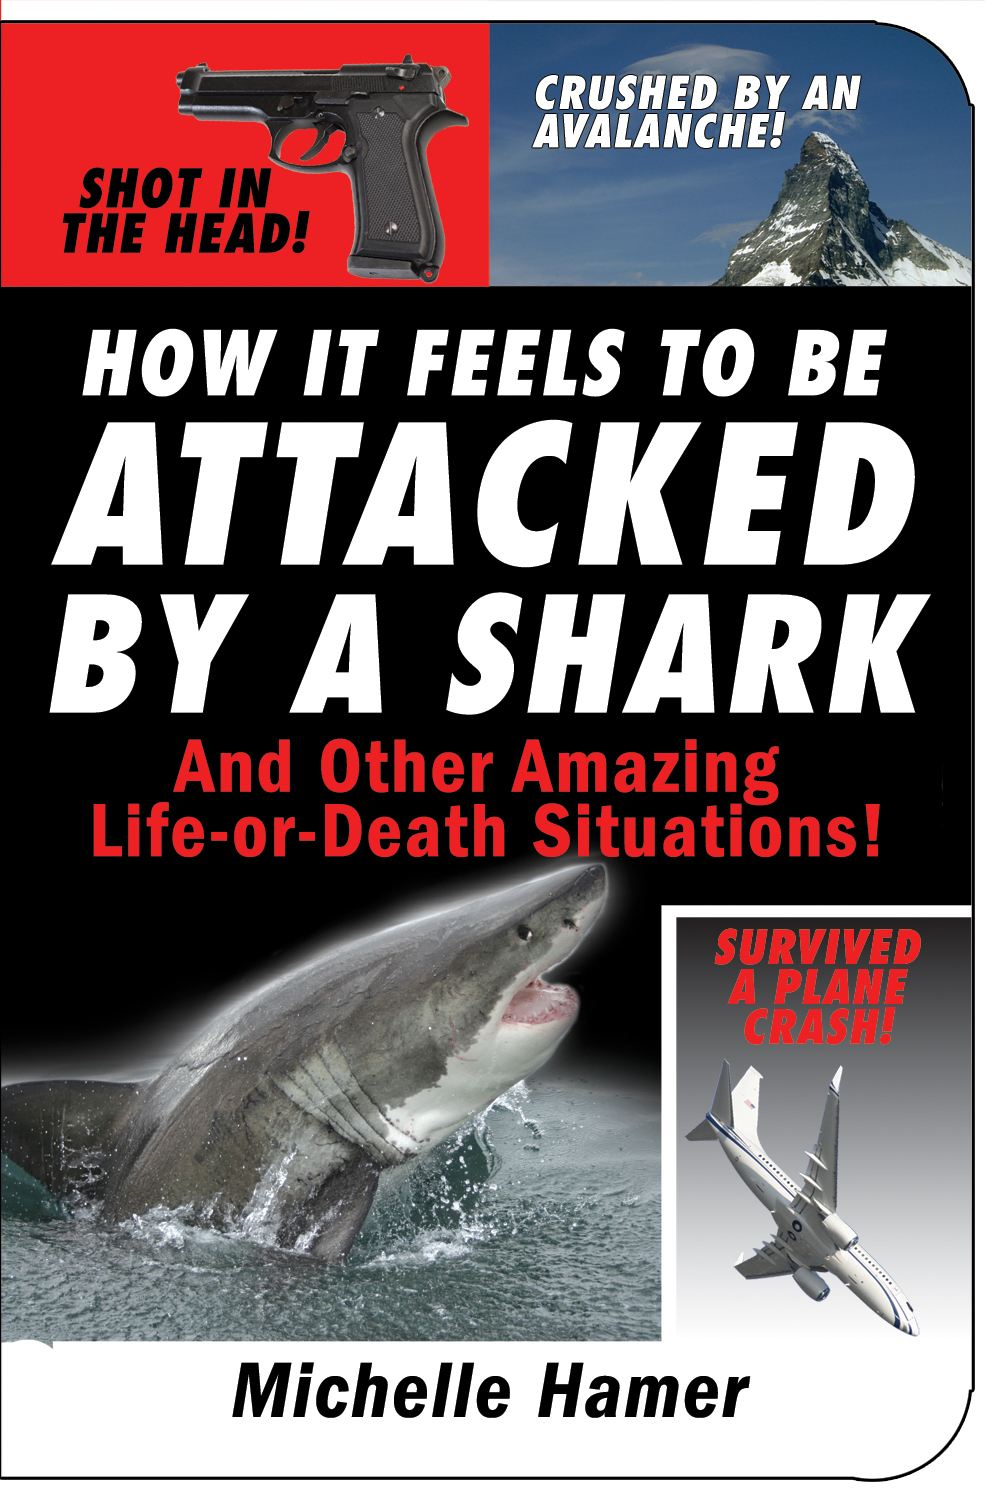 How It Feels To Be Attacked By a Shark: And Other Amazing Life-or-Death Situations!